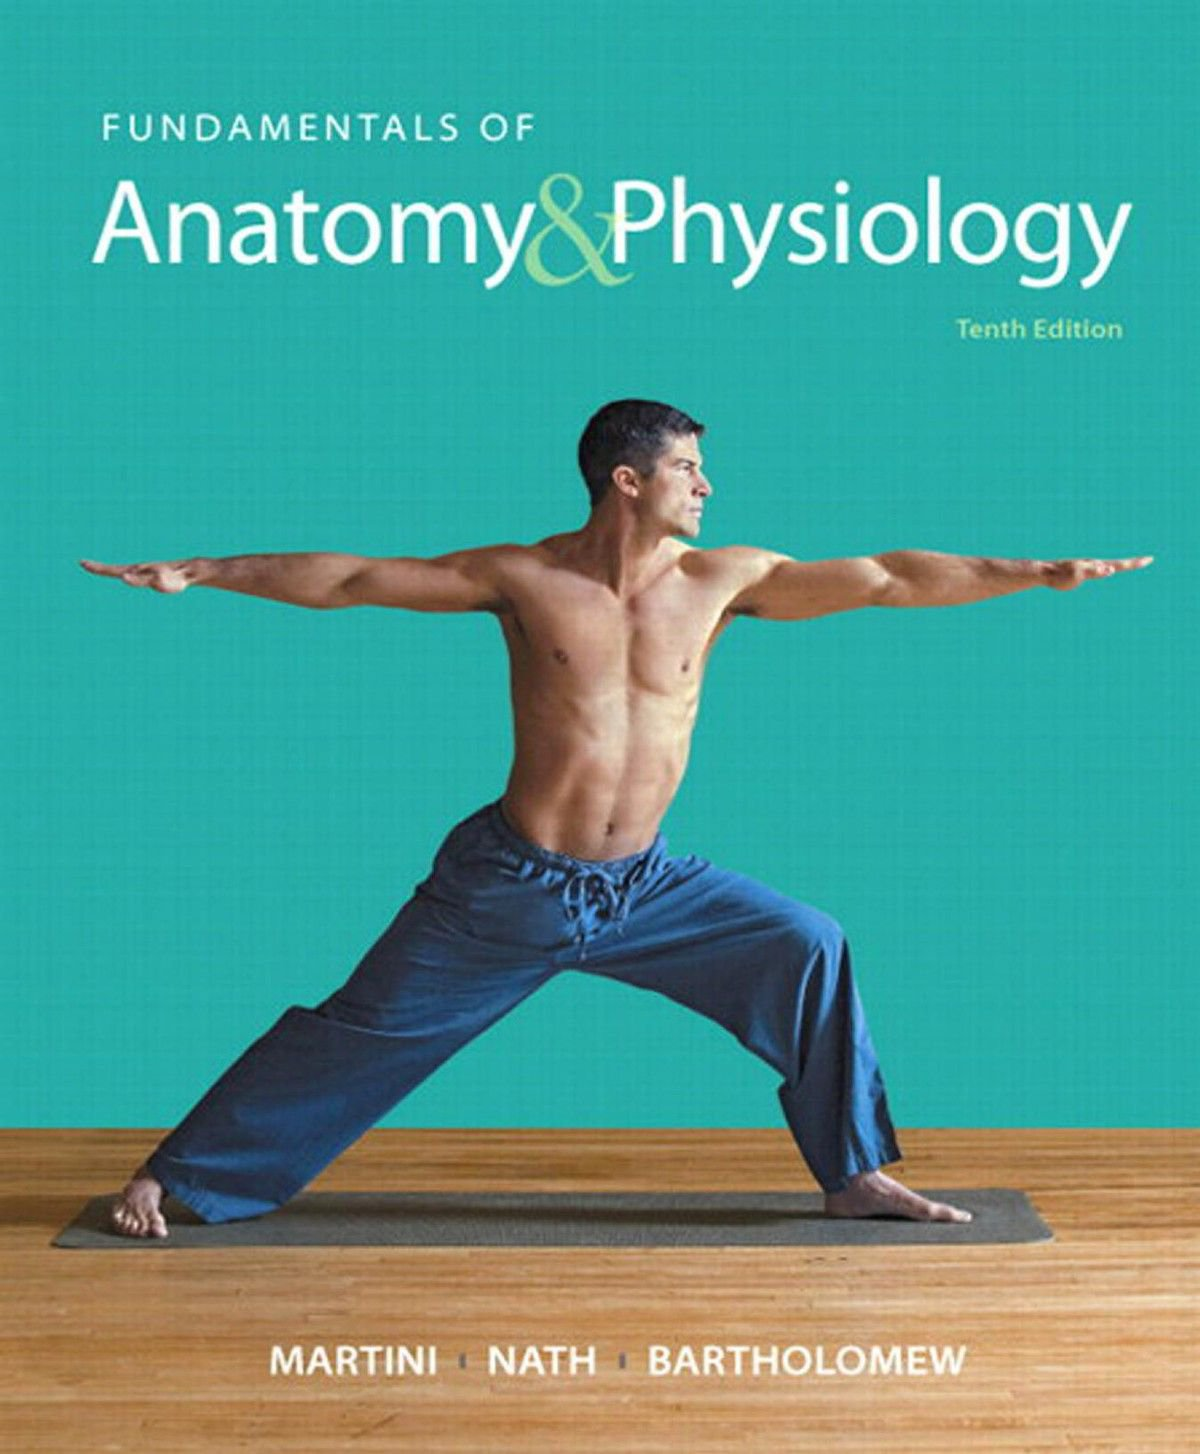 Fundamentals of Anatomy and Physiology 10th Edition(e-Textbook)